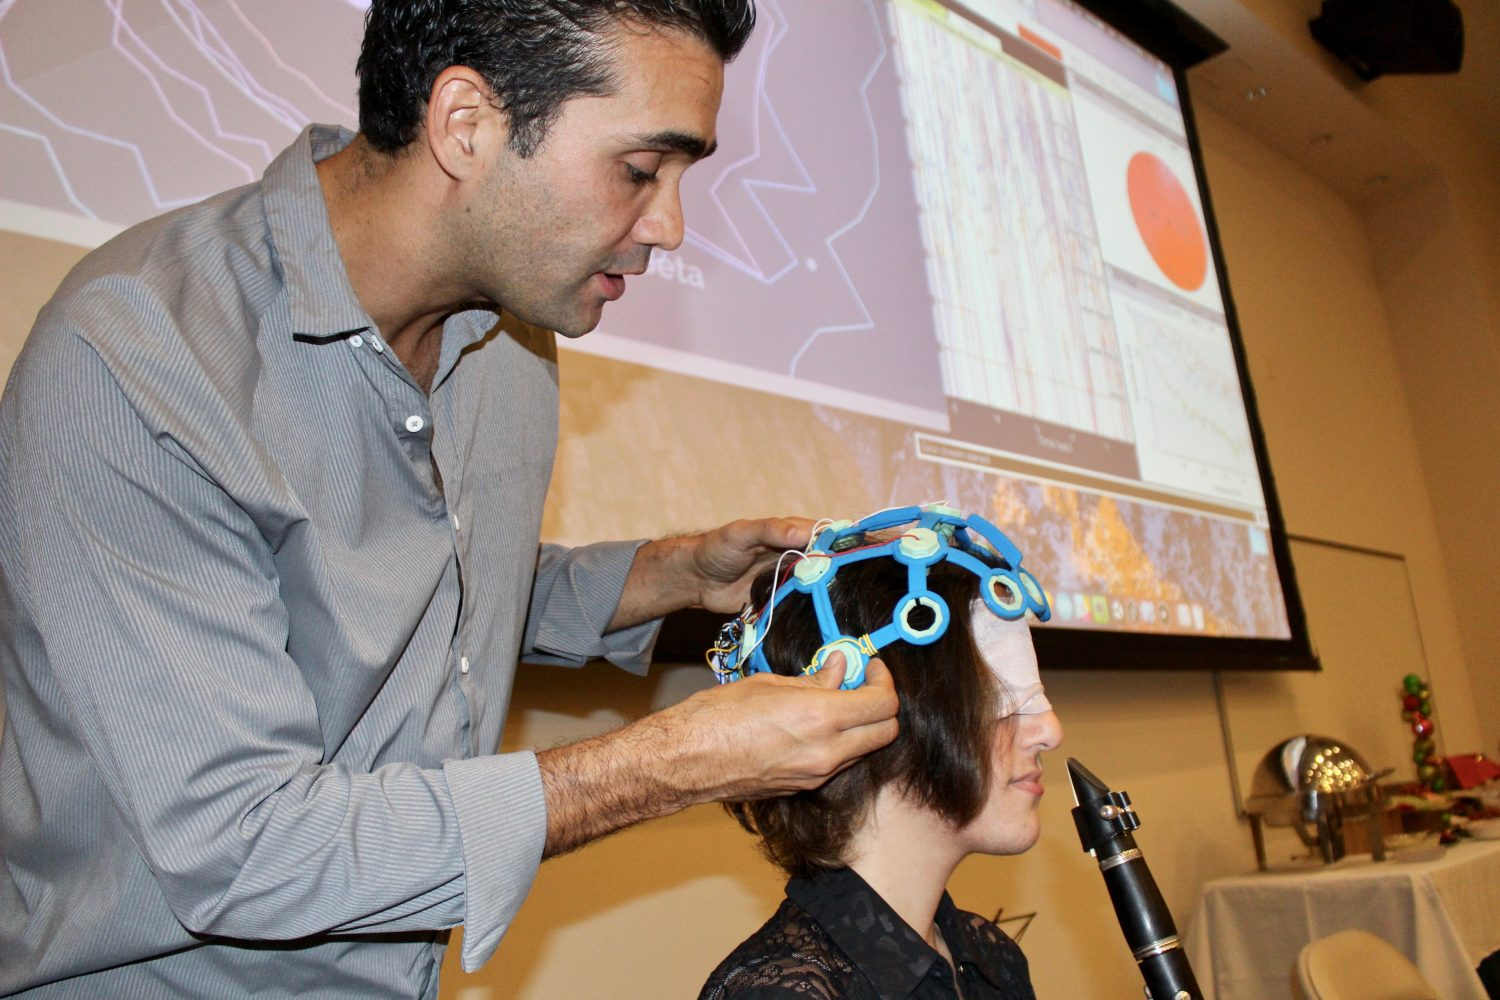 Man placing scientific equipment on woman's head